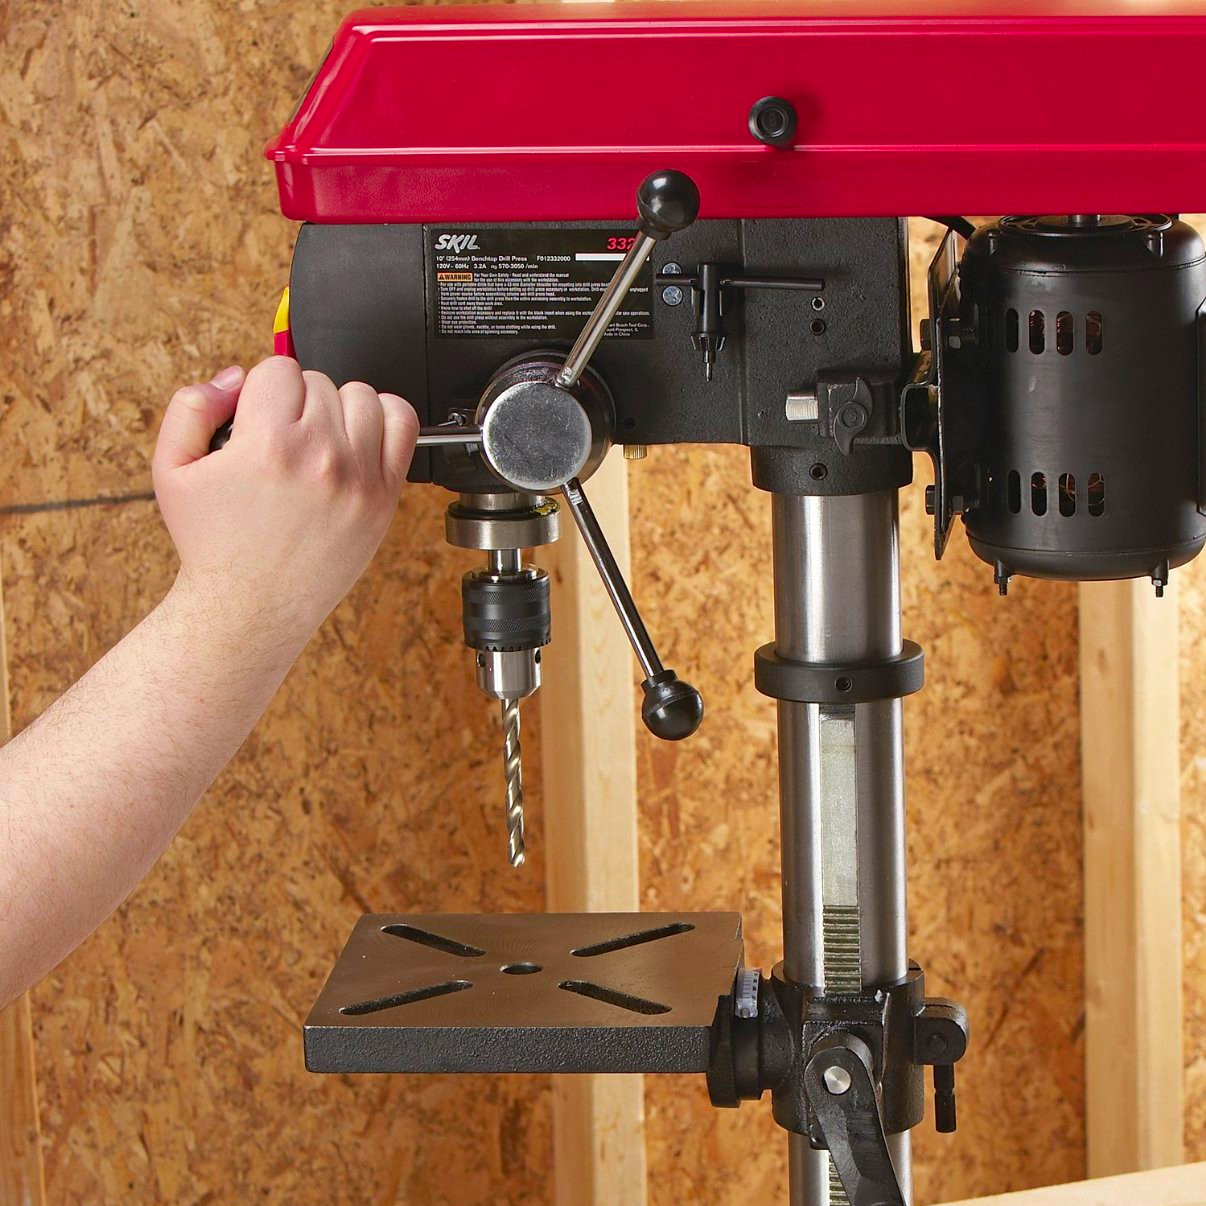 5 Best Benchtop Drill Press Review 2020